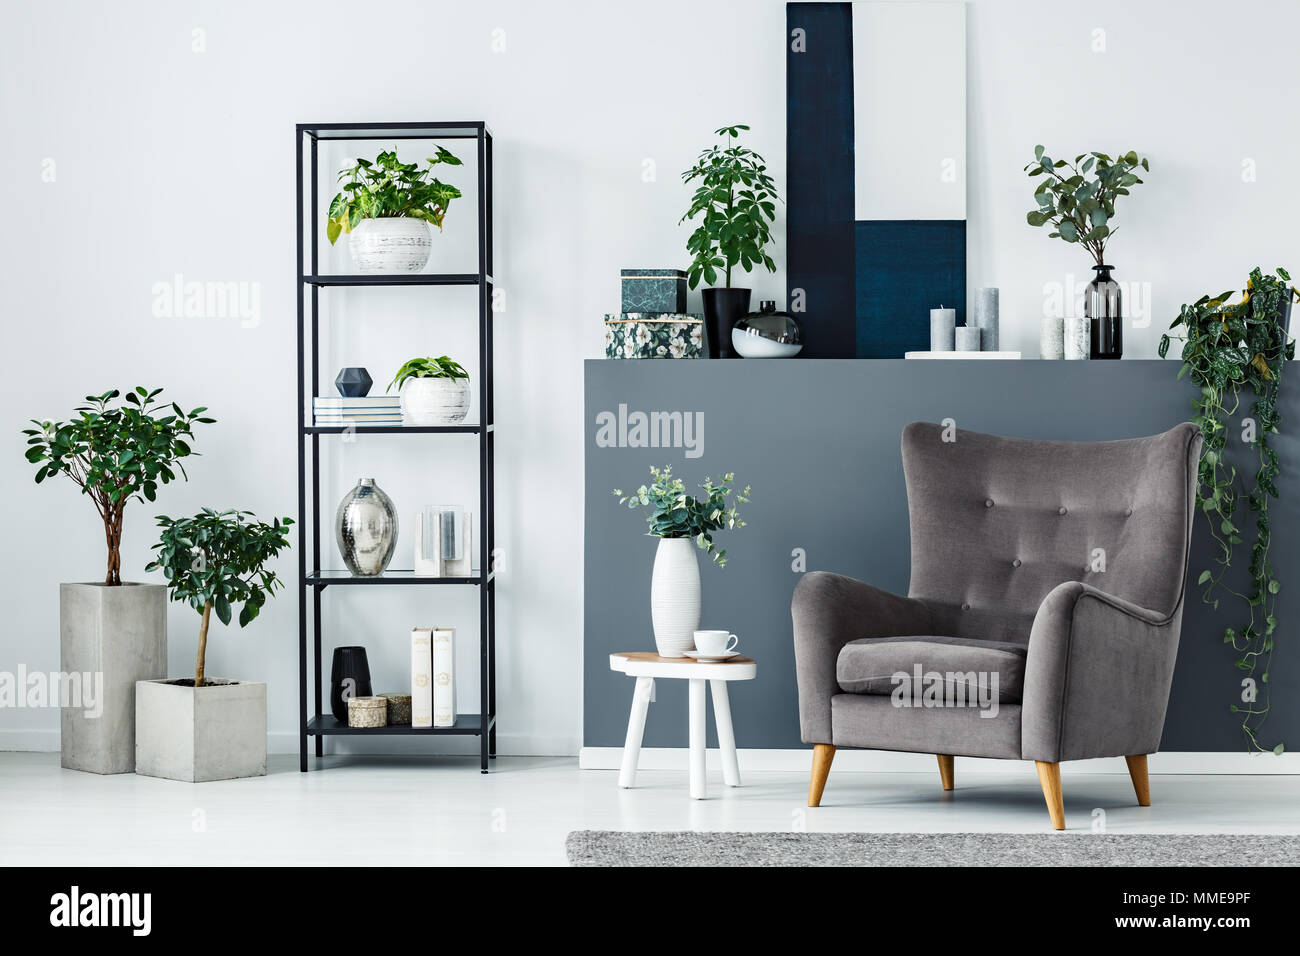 Modern sitting area interior with a comfy armchair, metal shelf and plants - Stock Image